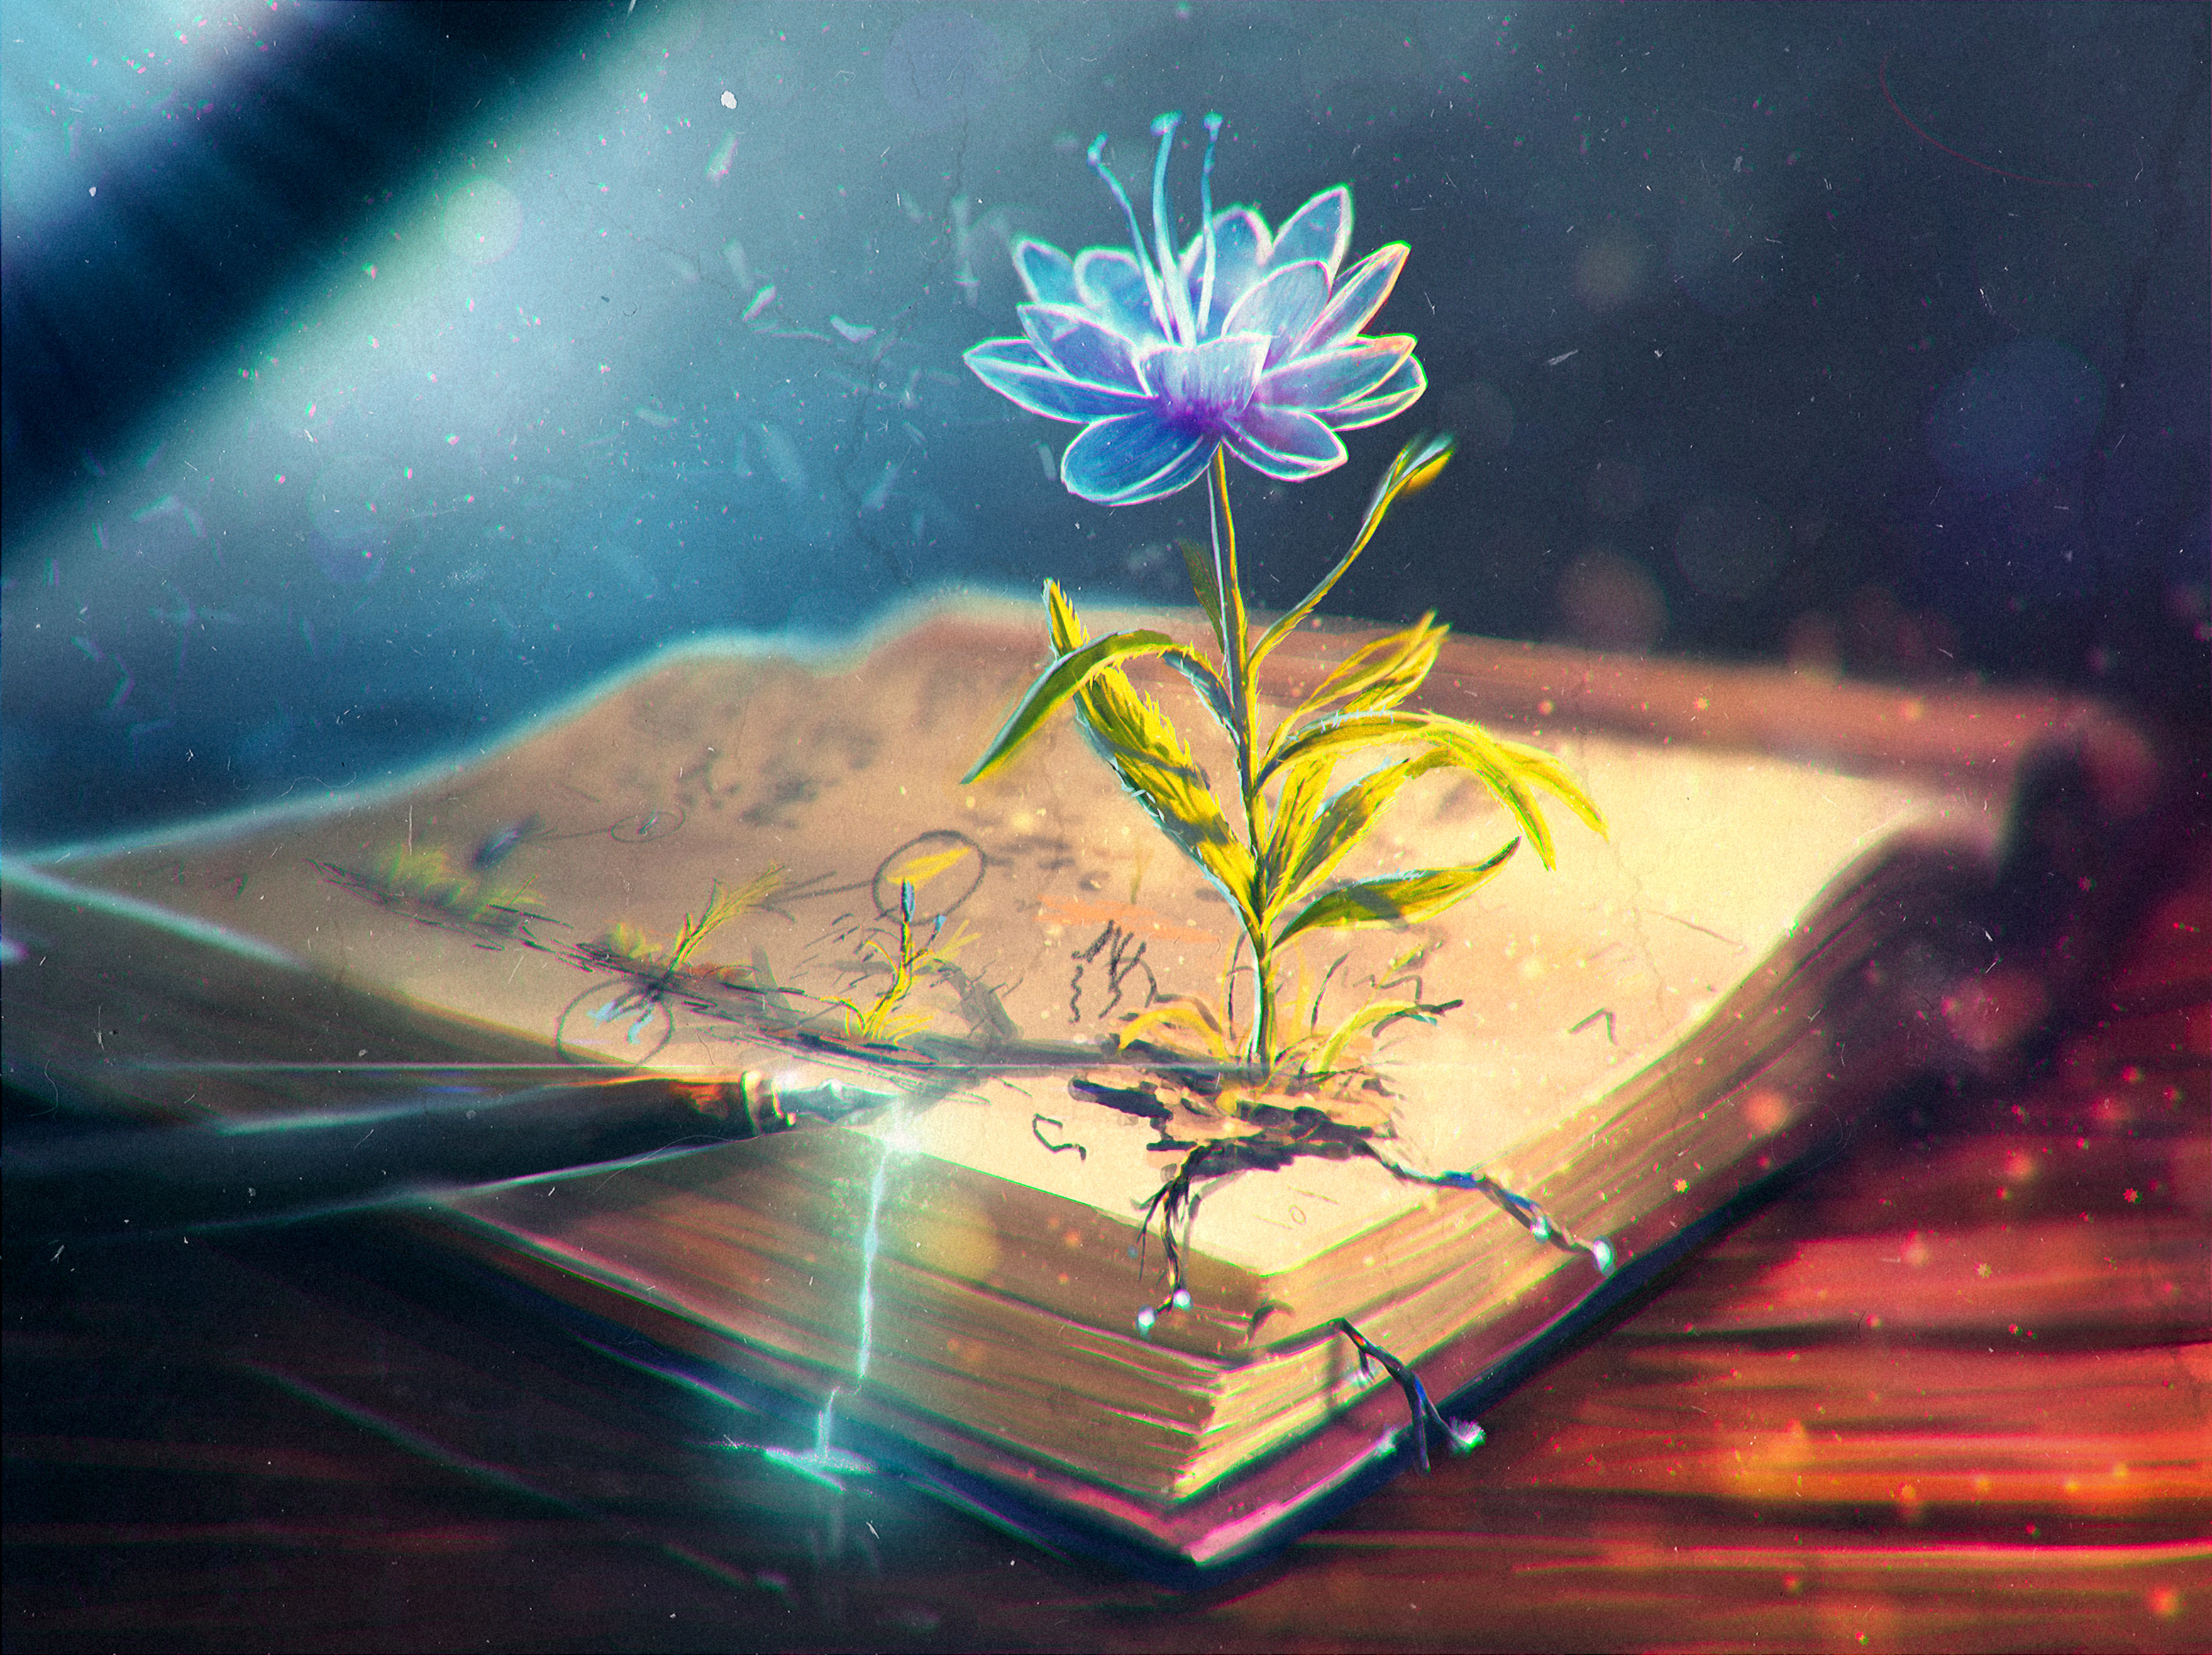 58063 download wallpaper Abstract, Feather, Flower, Book, Pen screensavers and pictures for free